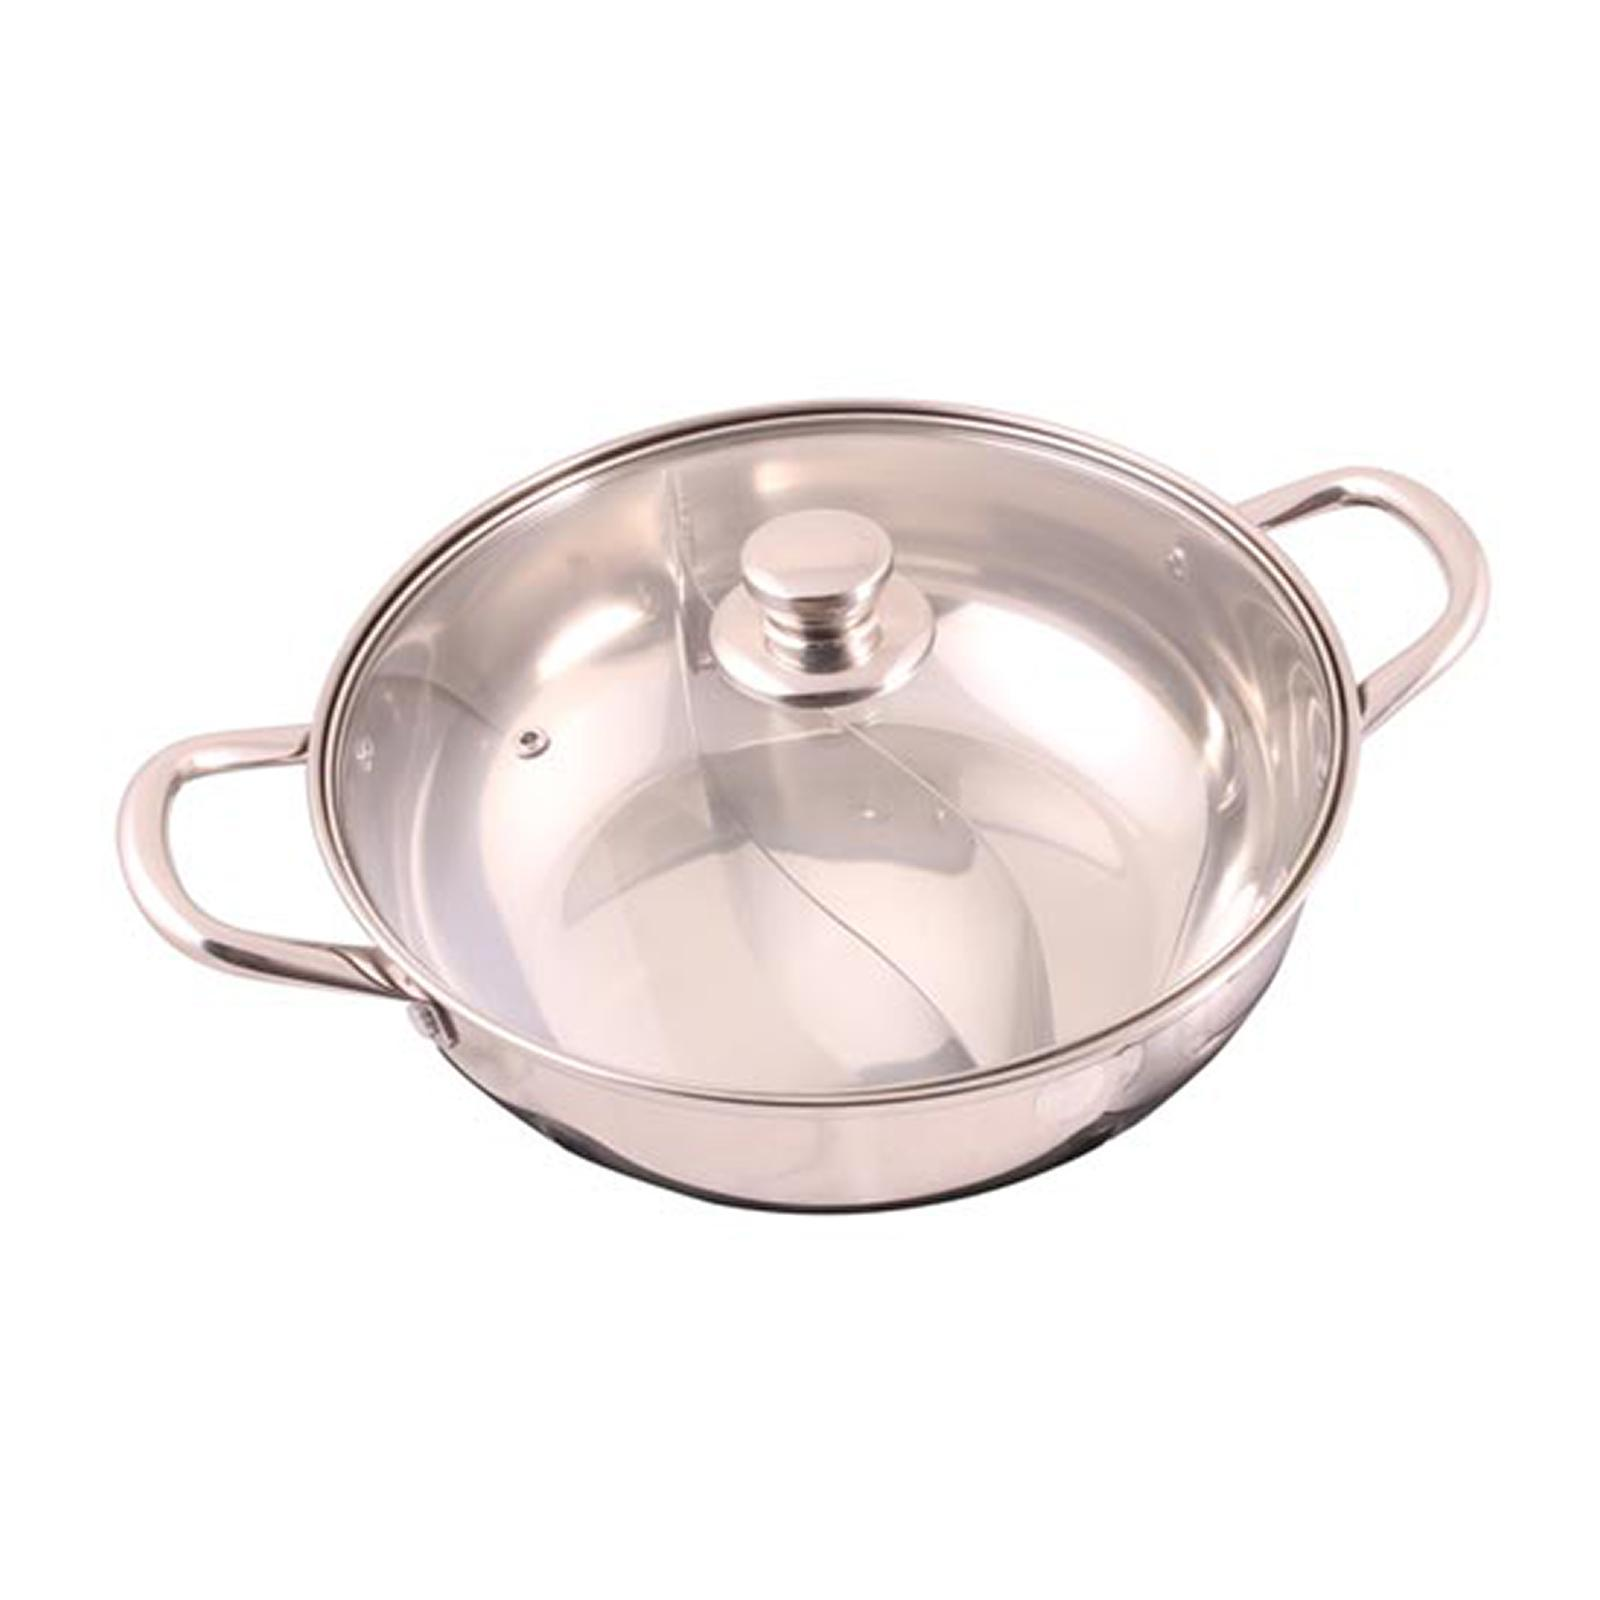 ToTT Divided Shabu Shabu Hot Pot With Glass Lid 28Cm - By ToTT